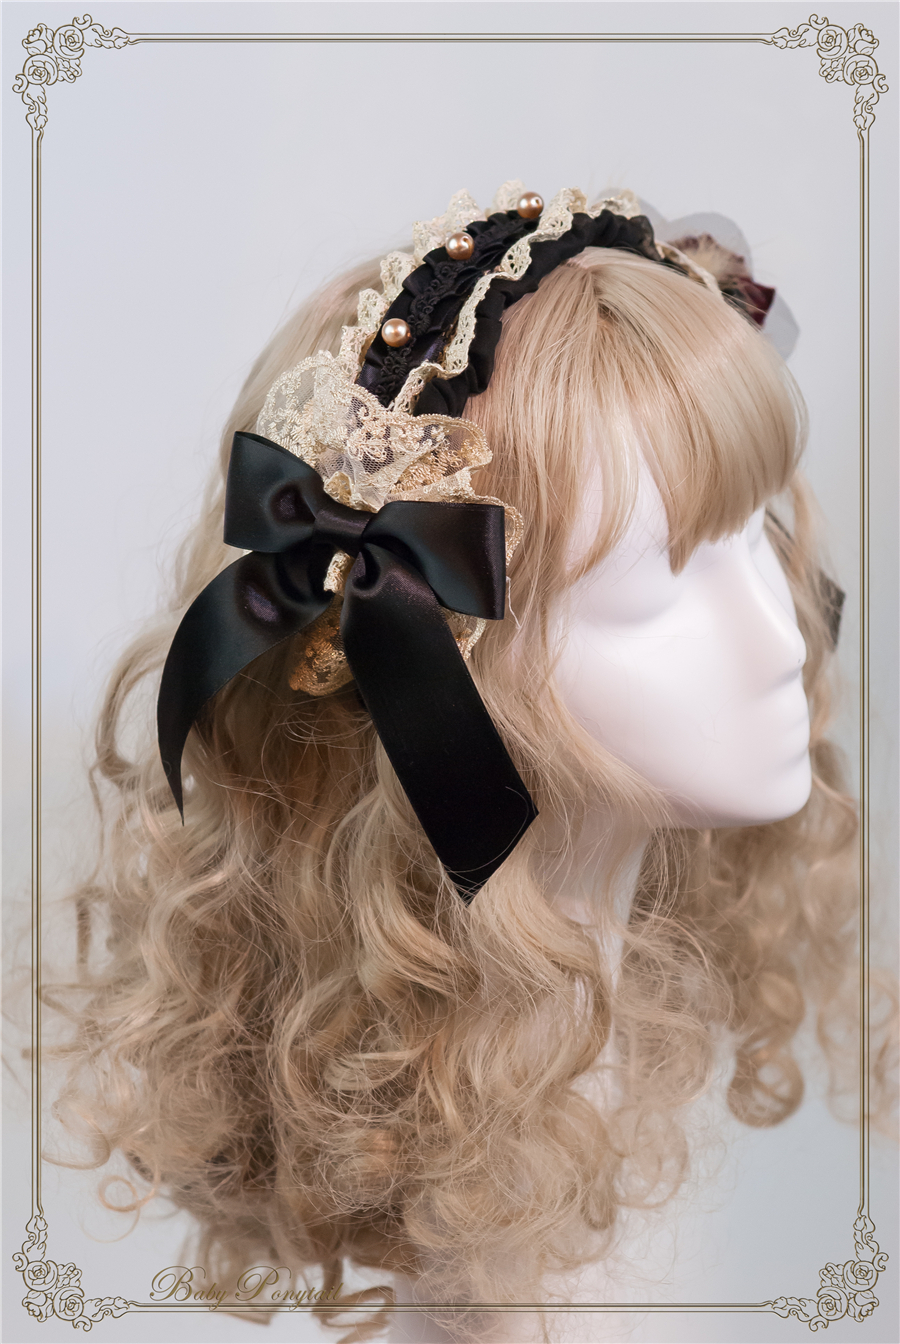 Baby Ponytail_Stock photo_Circus Princess_Rose Head Dress Black_03.jpg